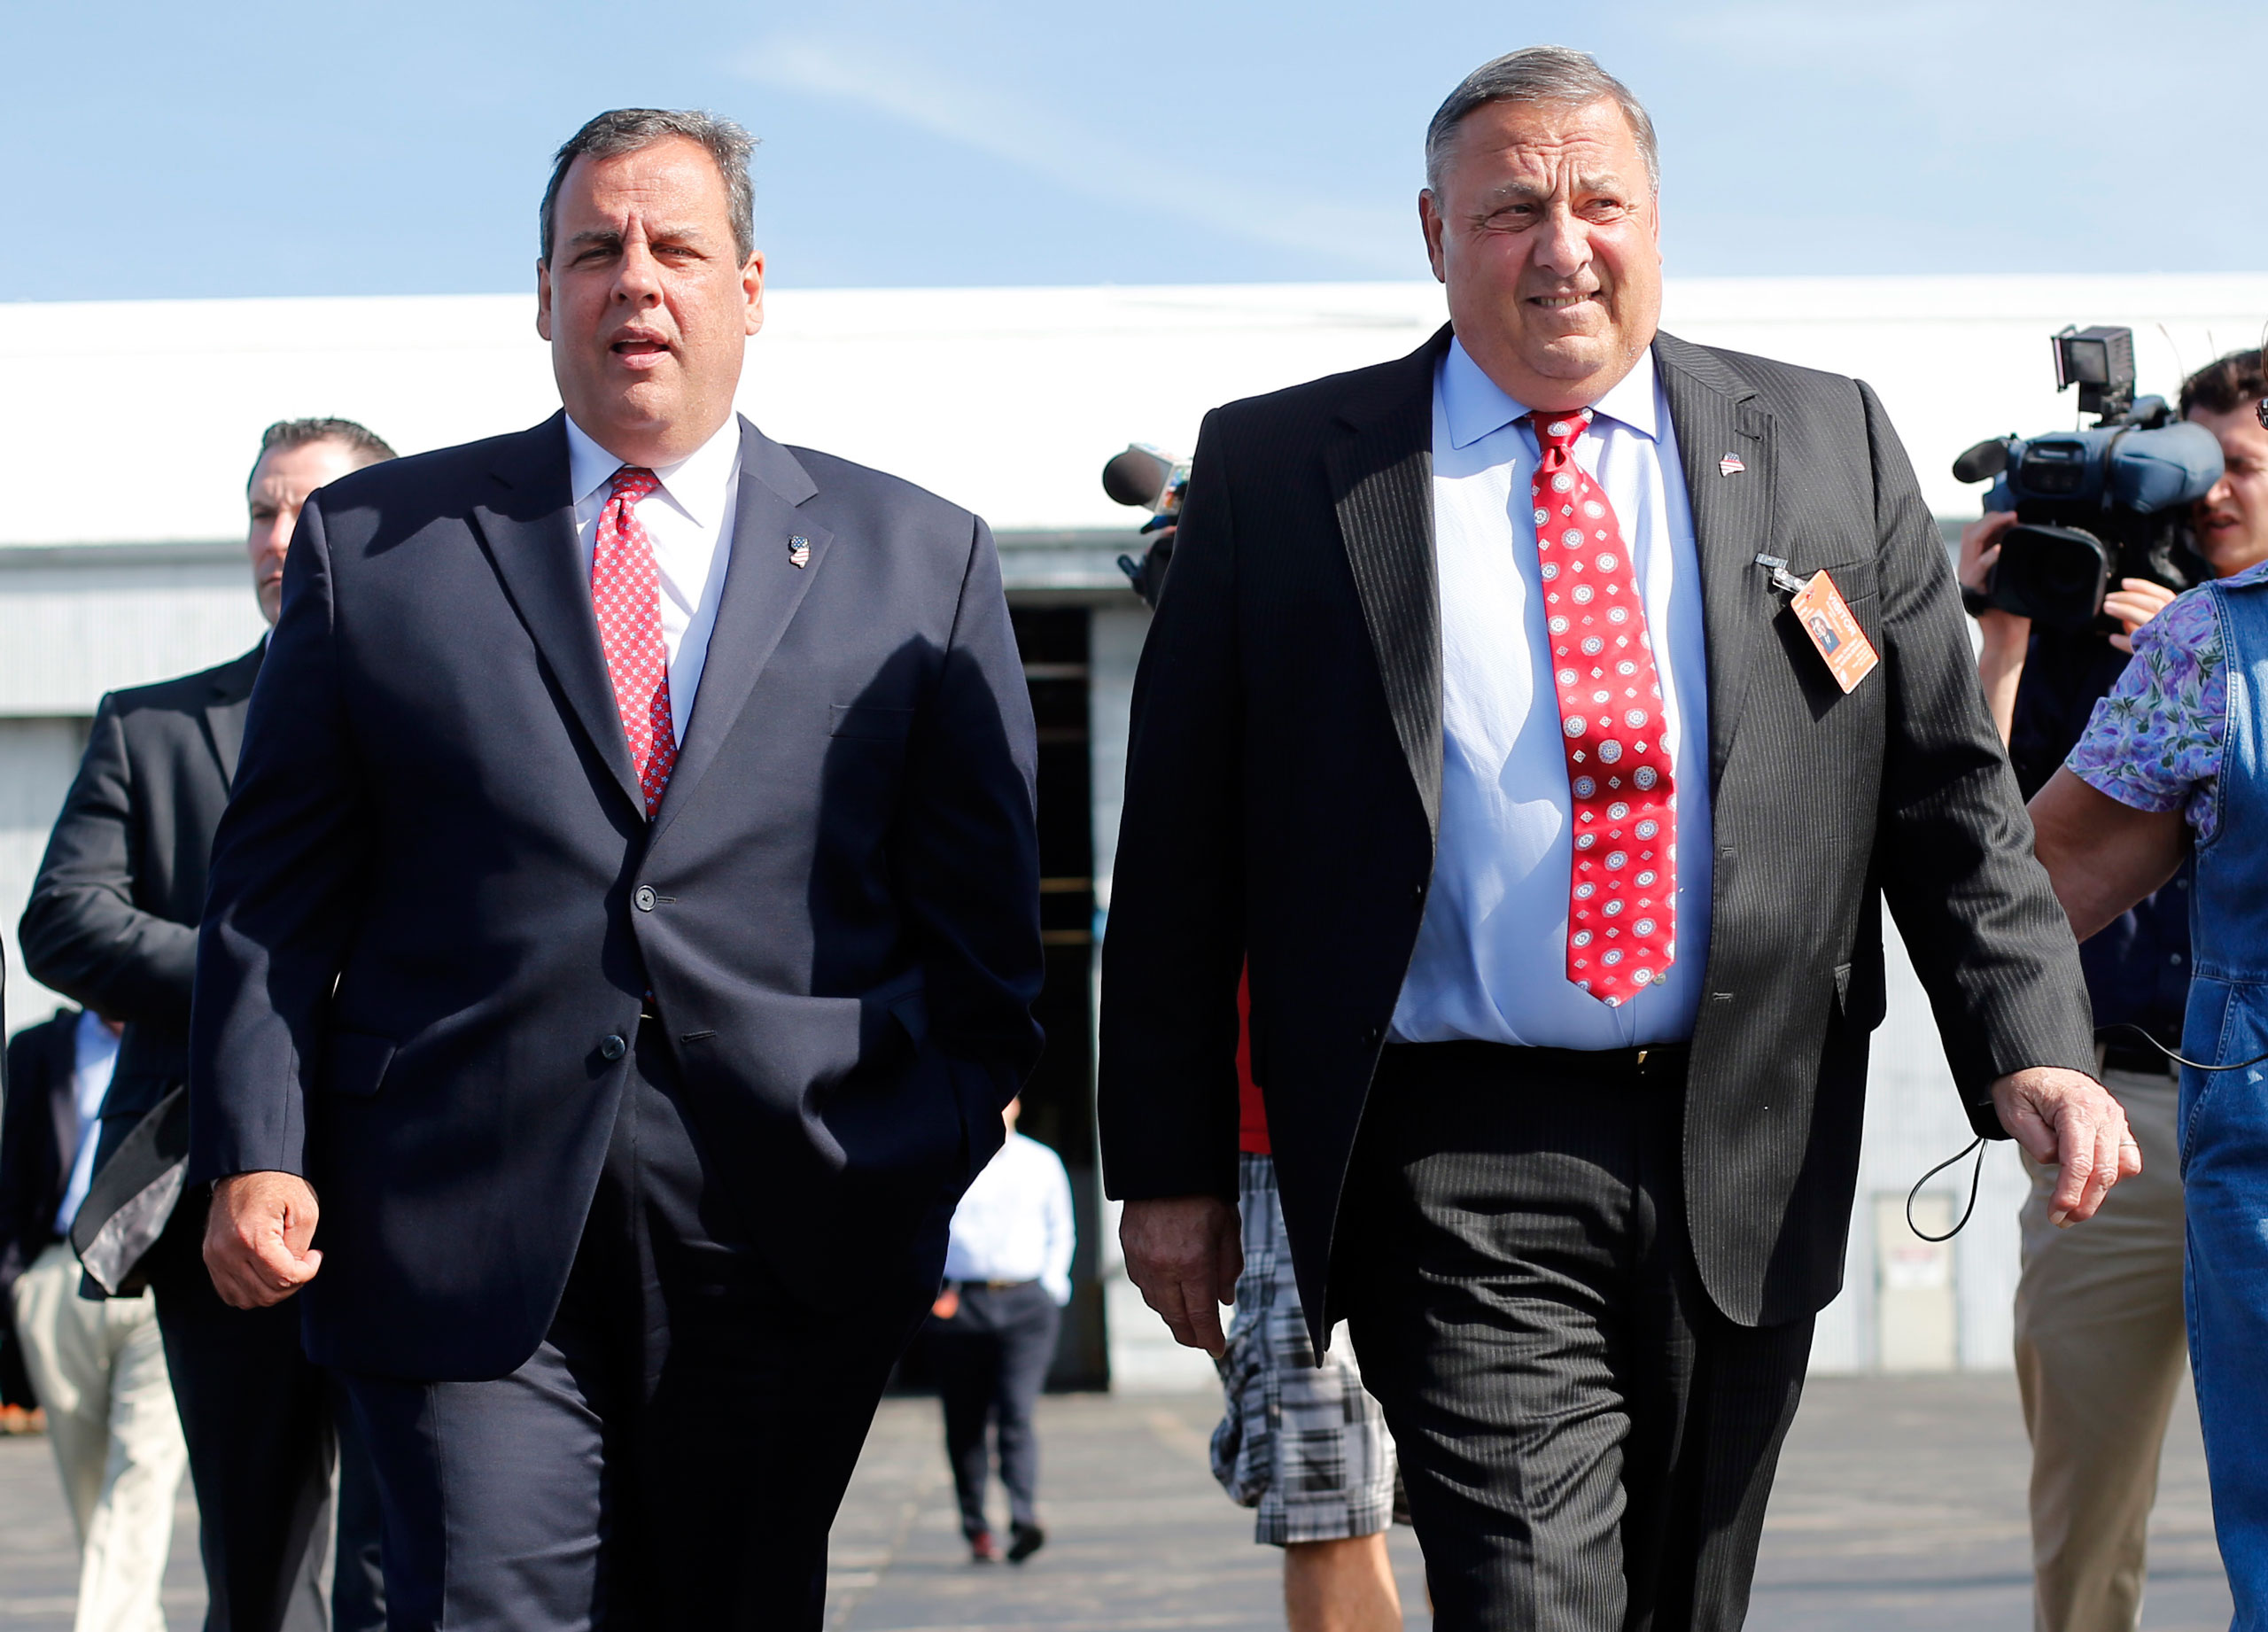 New Jersey Gov. Chris Christie, left, and Maine Gov. Paul LePage in Bangor, Maine, on, Aug. 12, 2014.